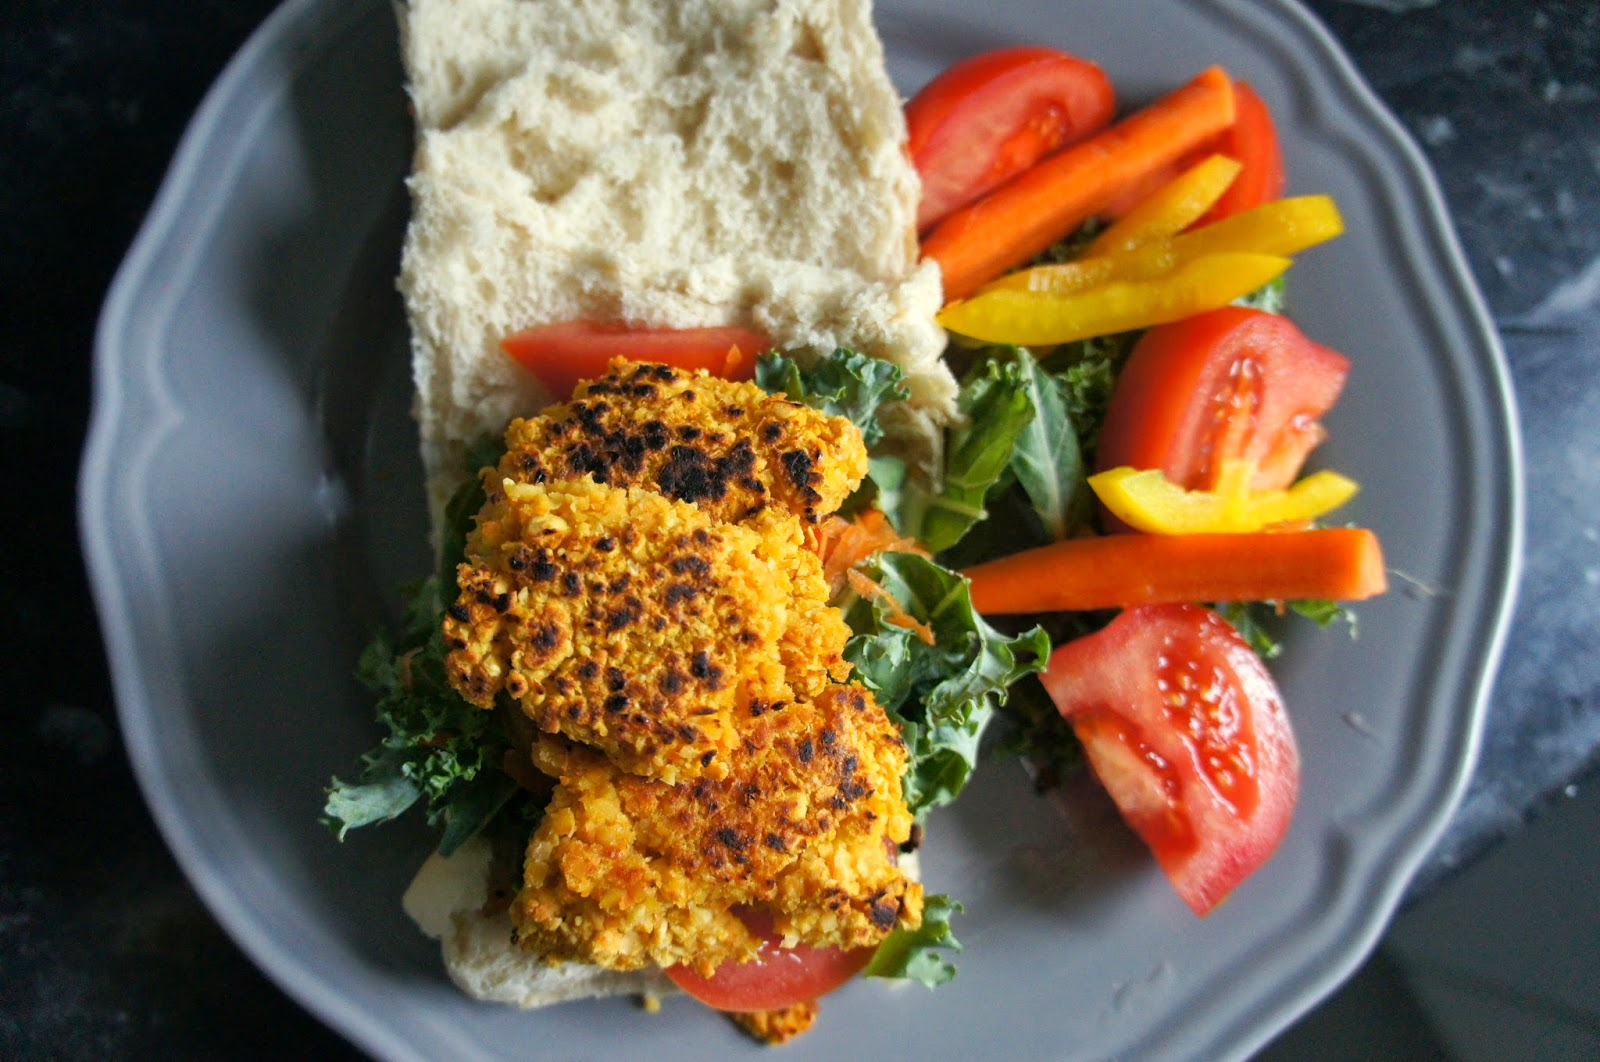 Bite Sized Thoughts Jamie Oliver Inspired Vegan Chickpea And Carrot